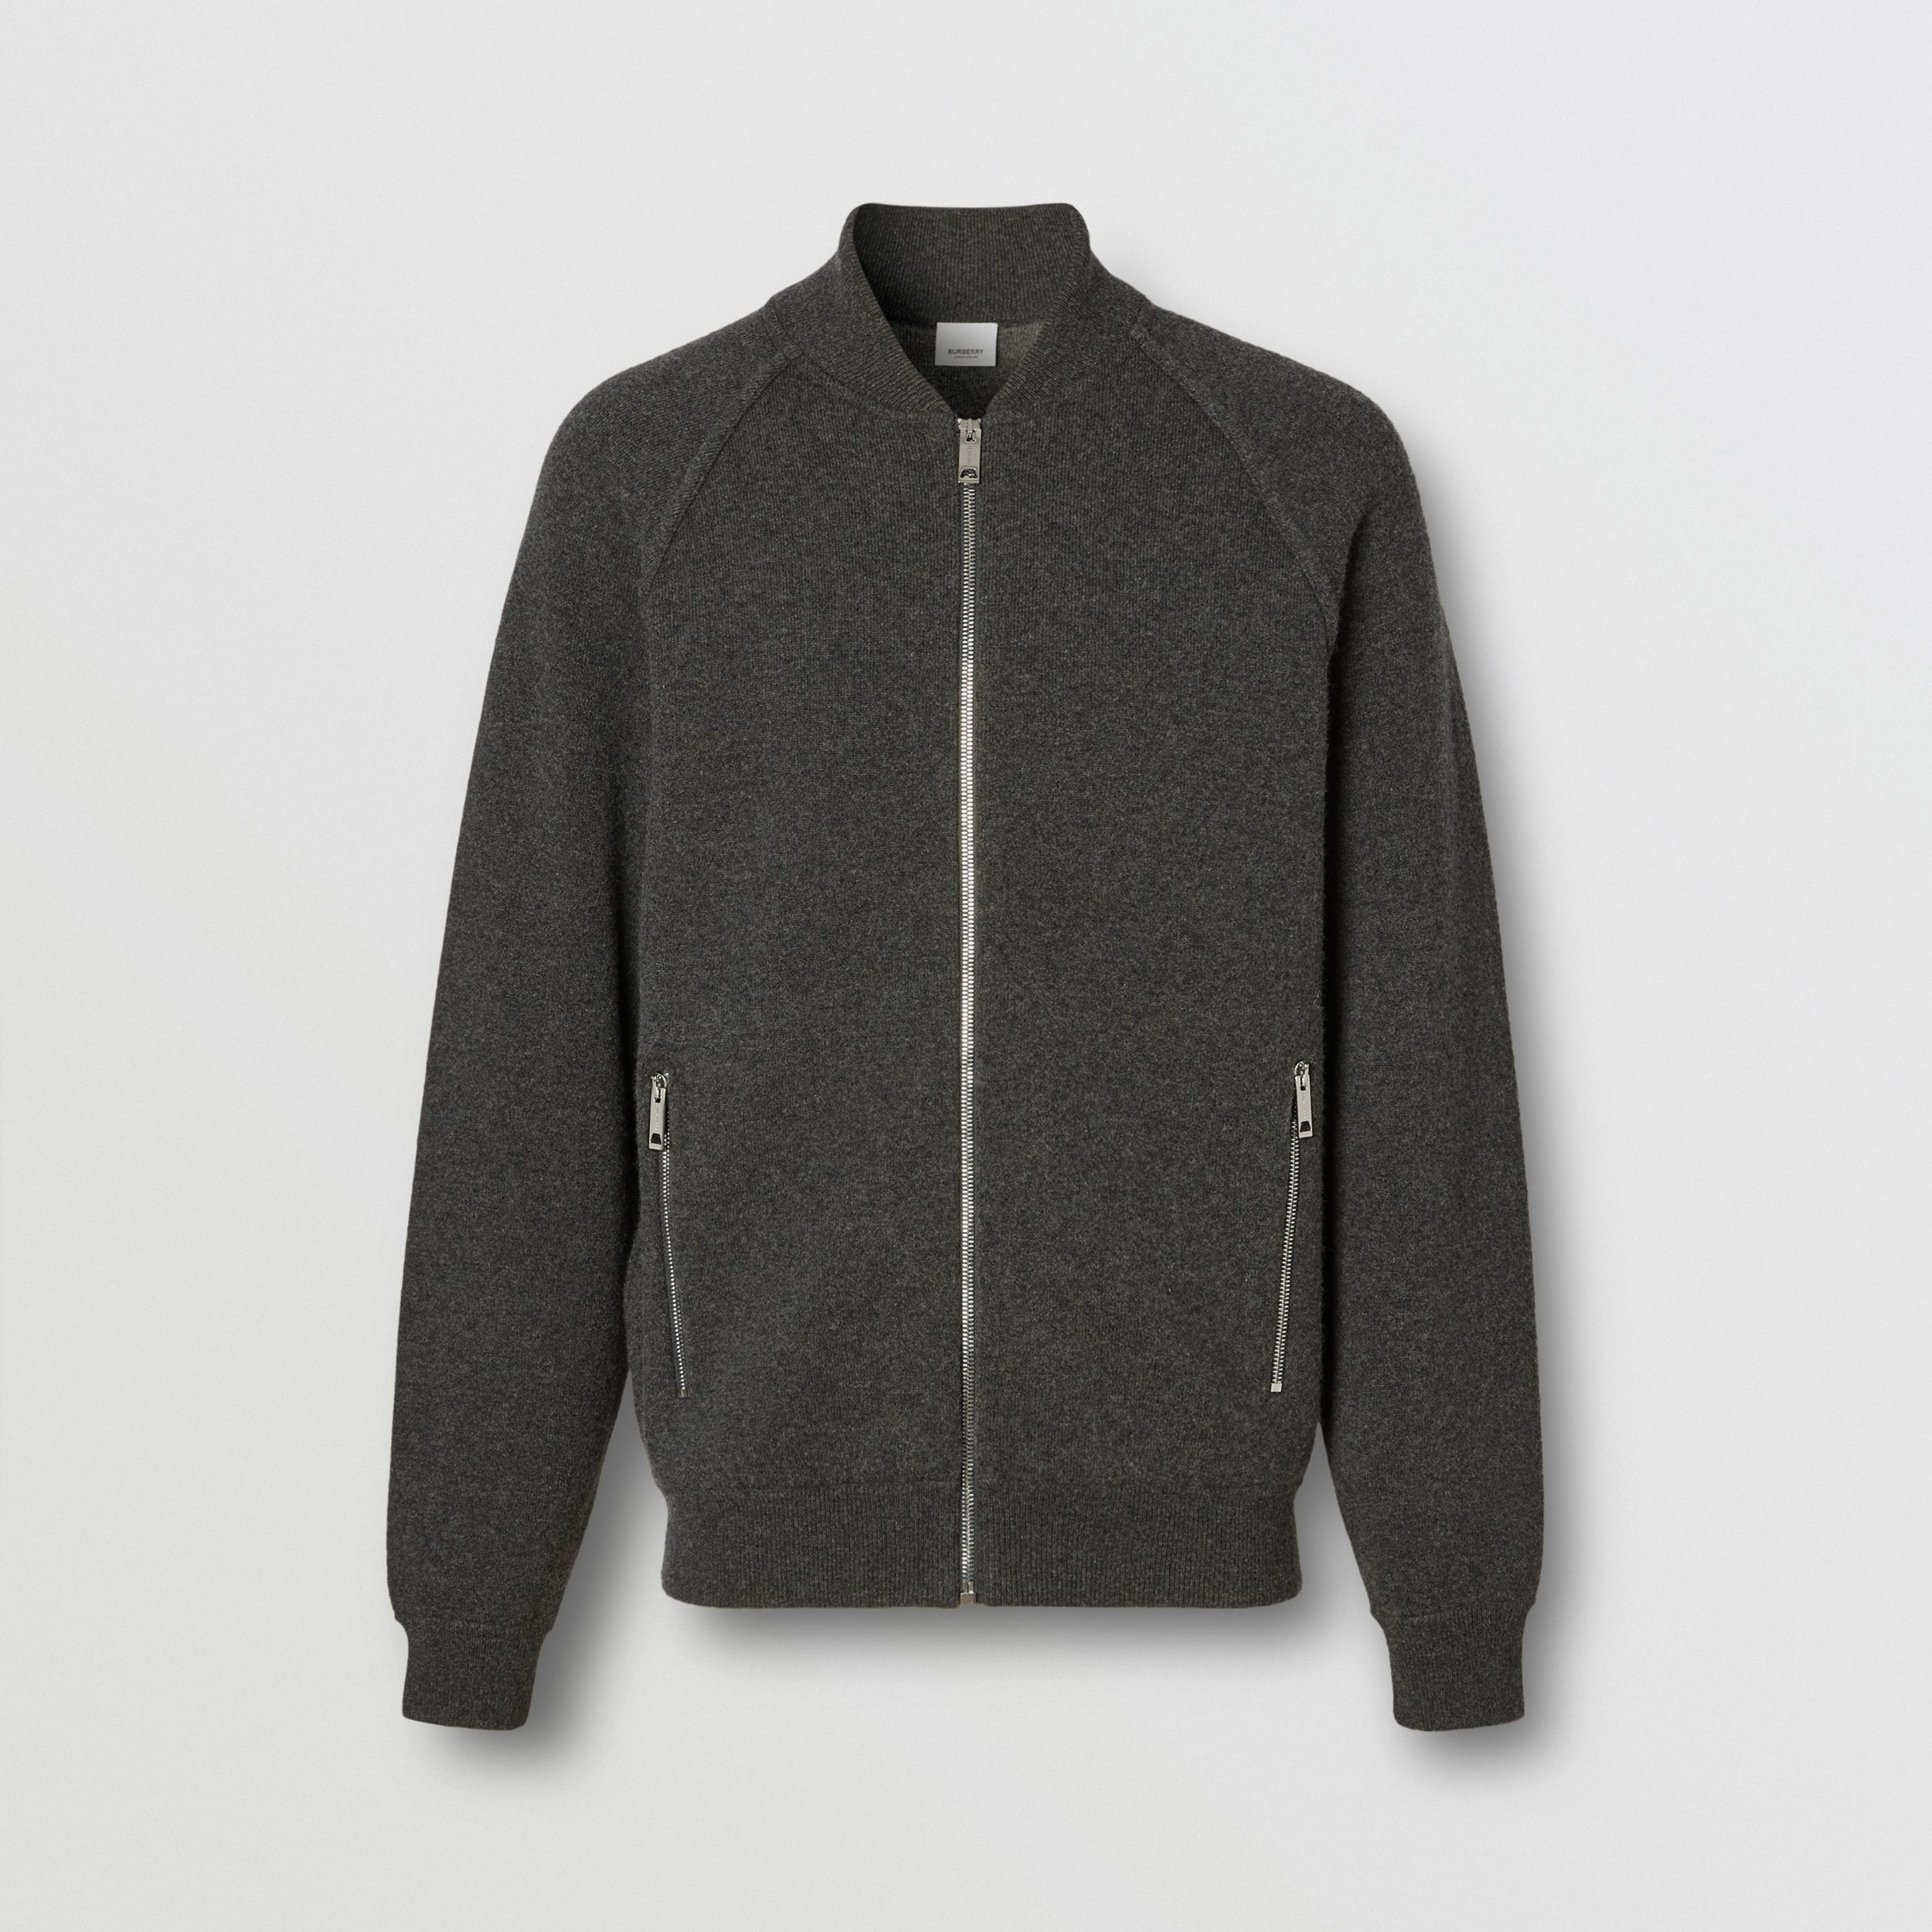 Double-faced Wool Cashmere Blend Bomber Jacket in Mid Grey Melange - Men | Burberry - 4